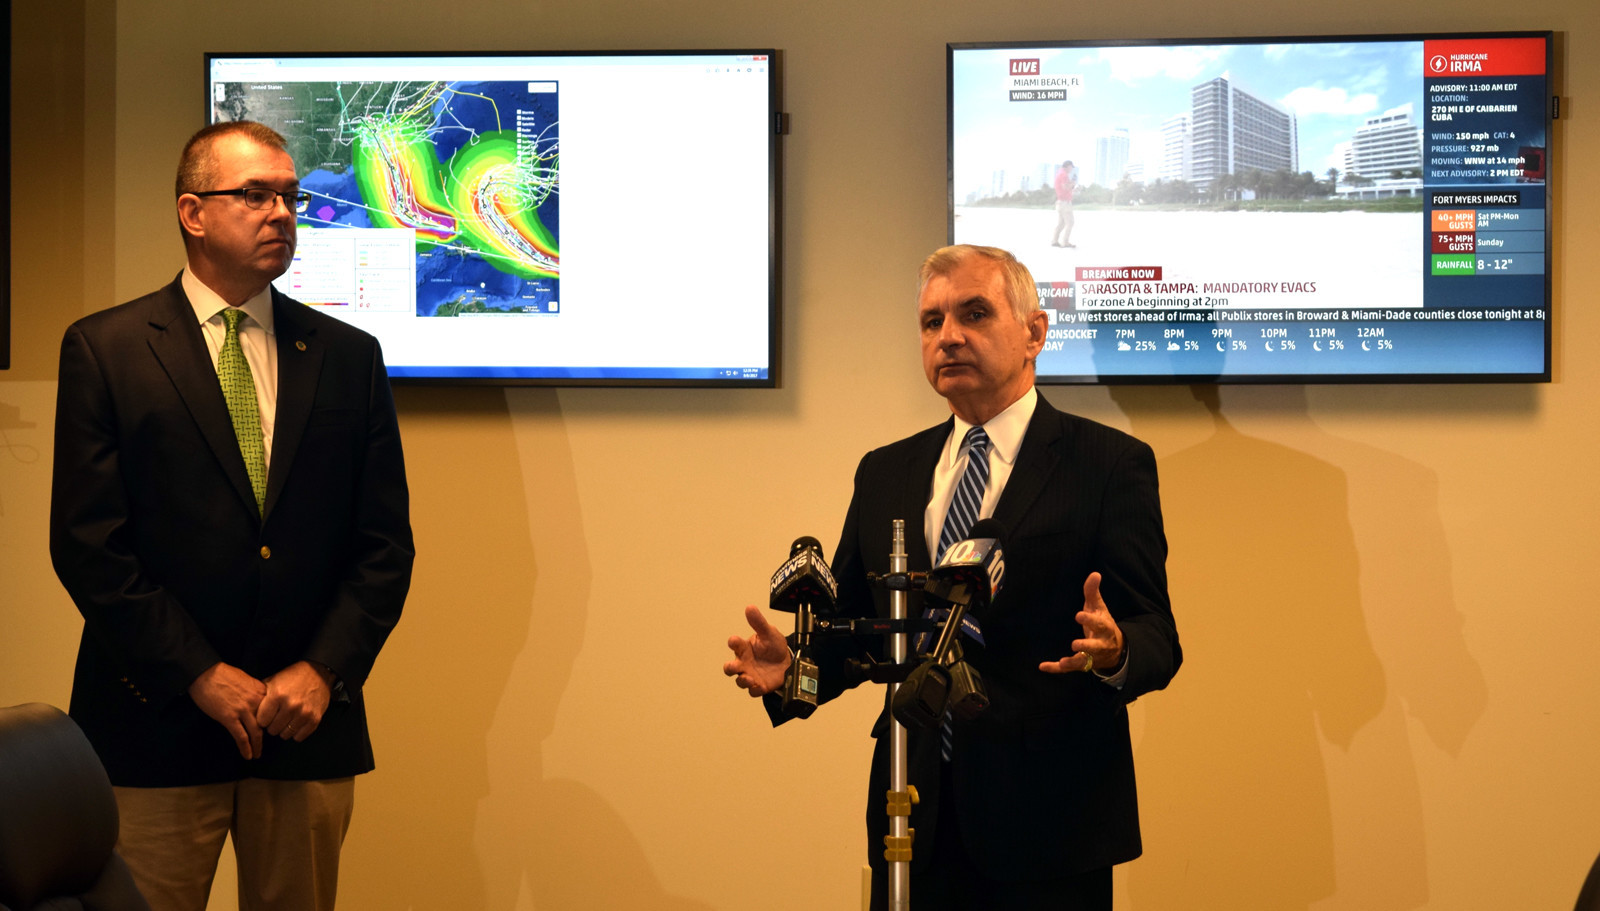 Sen. Jack Reed gave his preliminary remarks before taking questions from the press on Friday.